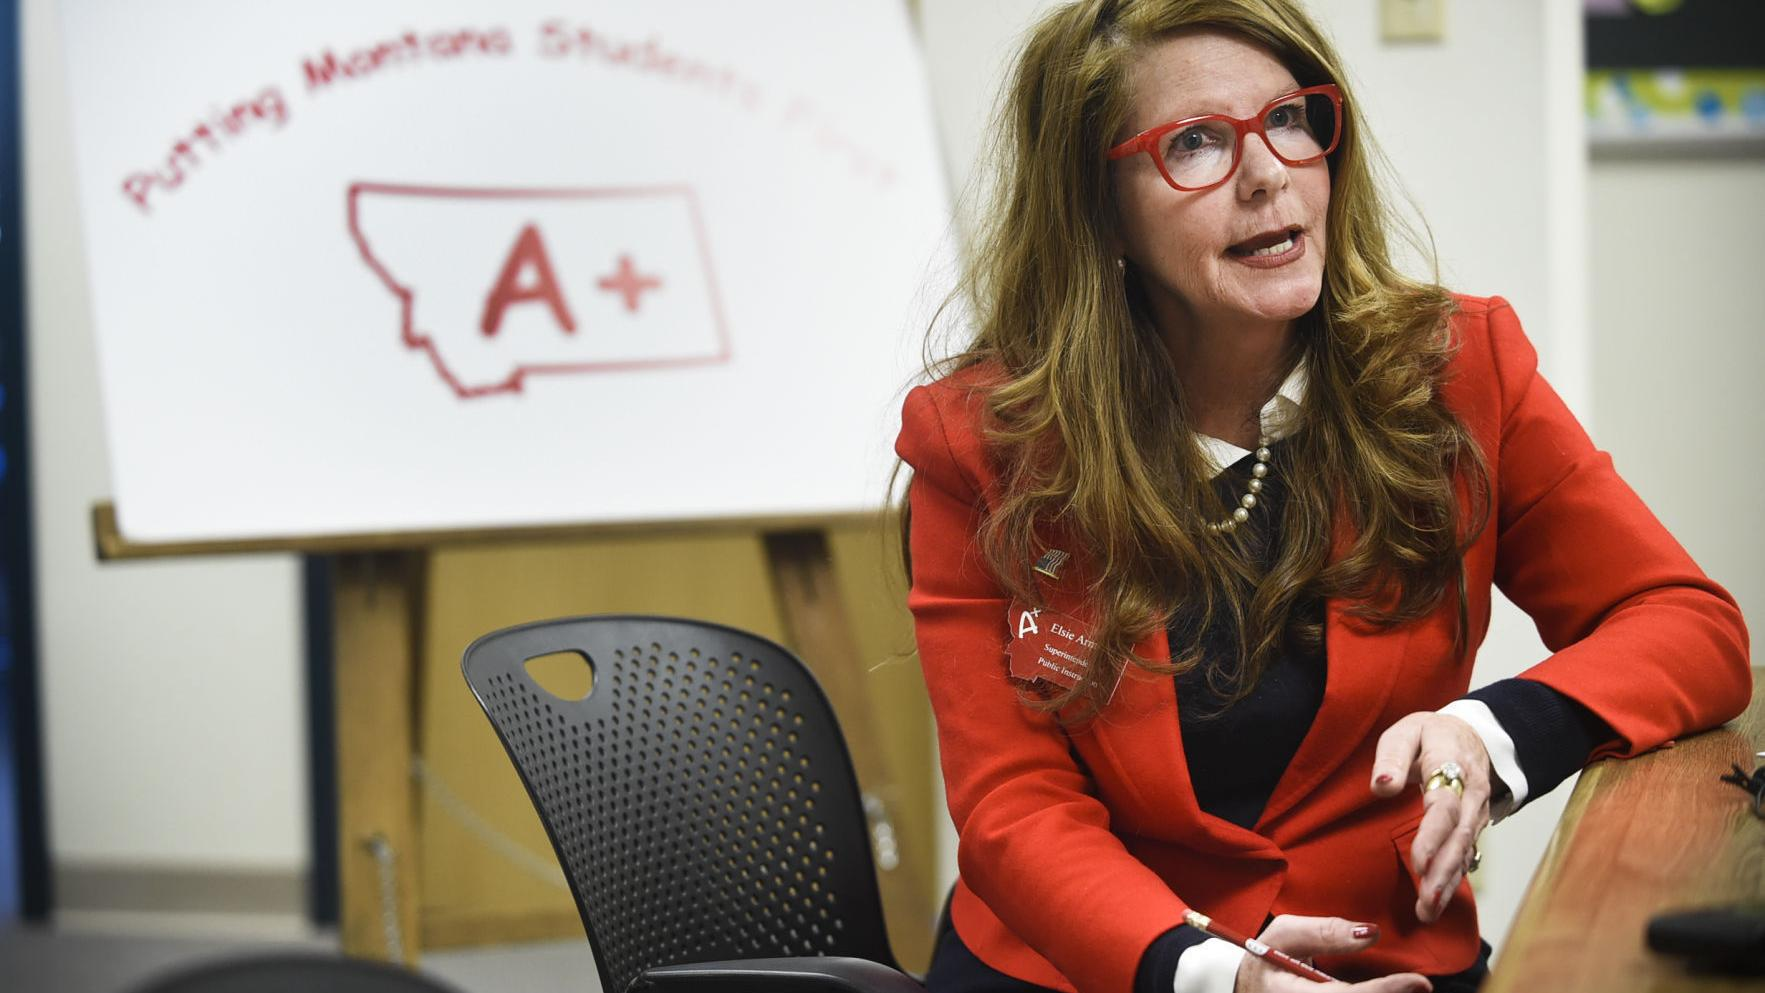 State superintendent proposes ban on teacher-student sex in wake of case involving 18-year-old